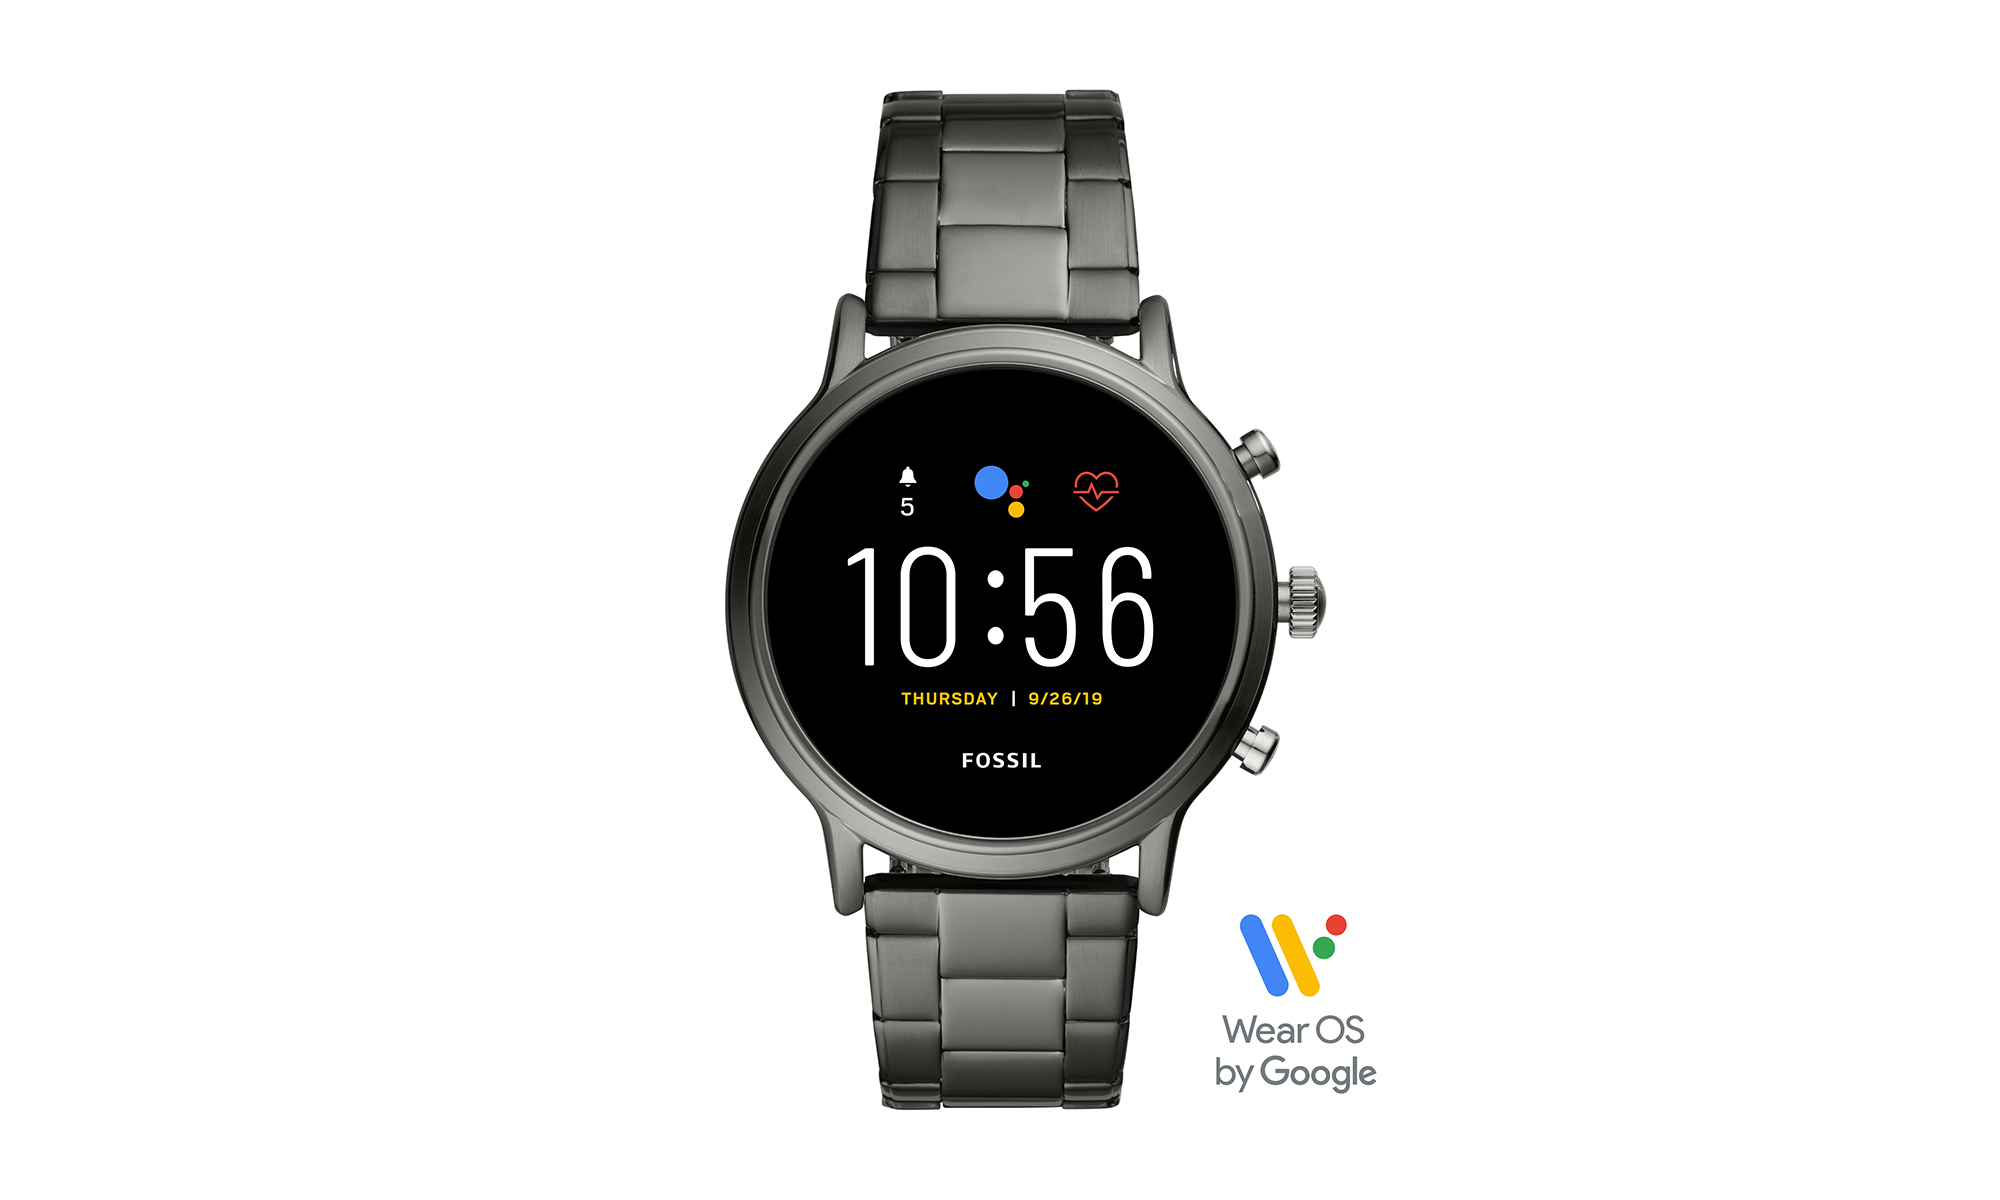 Gen 5 Fossil Touchscreen Smartwatch